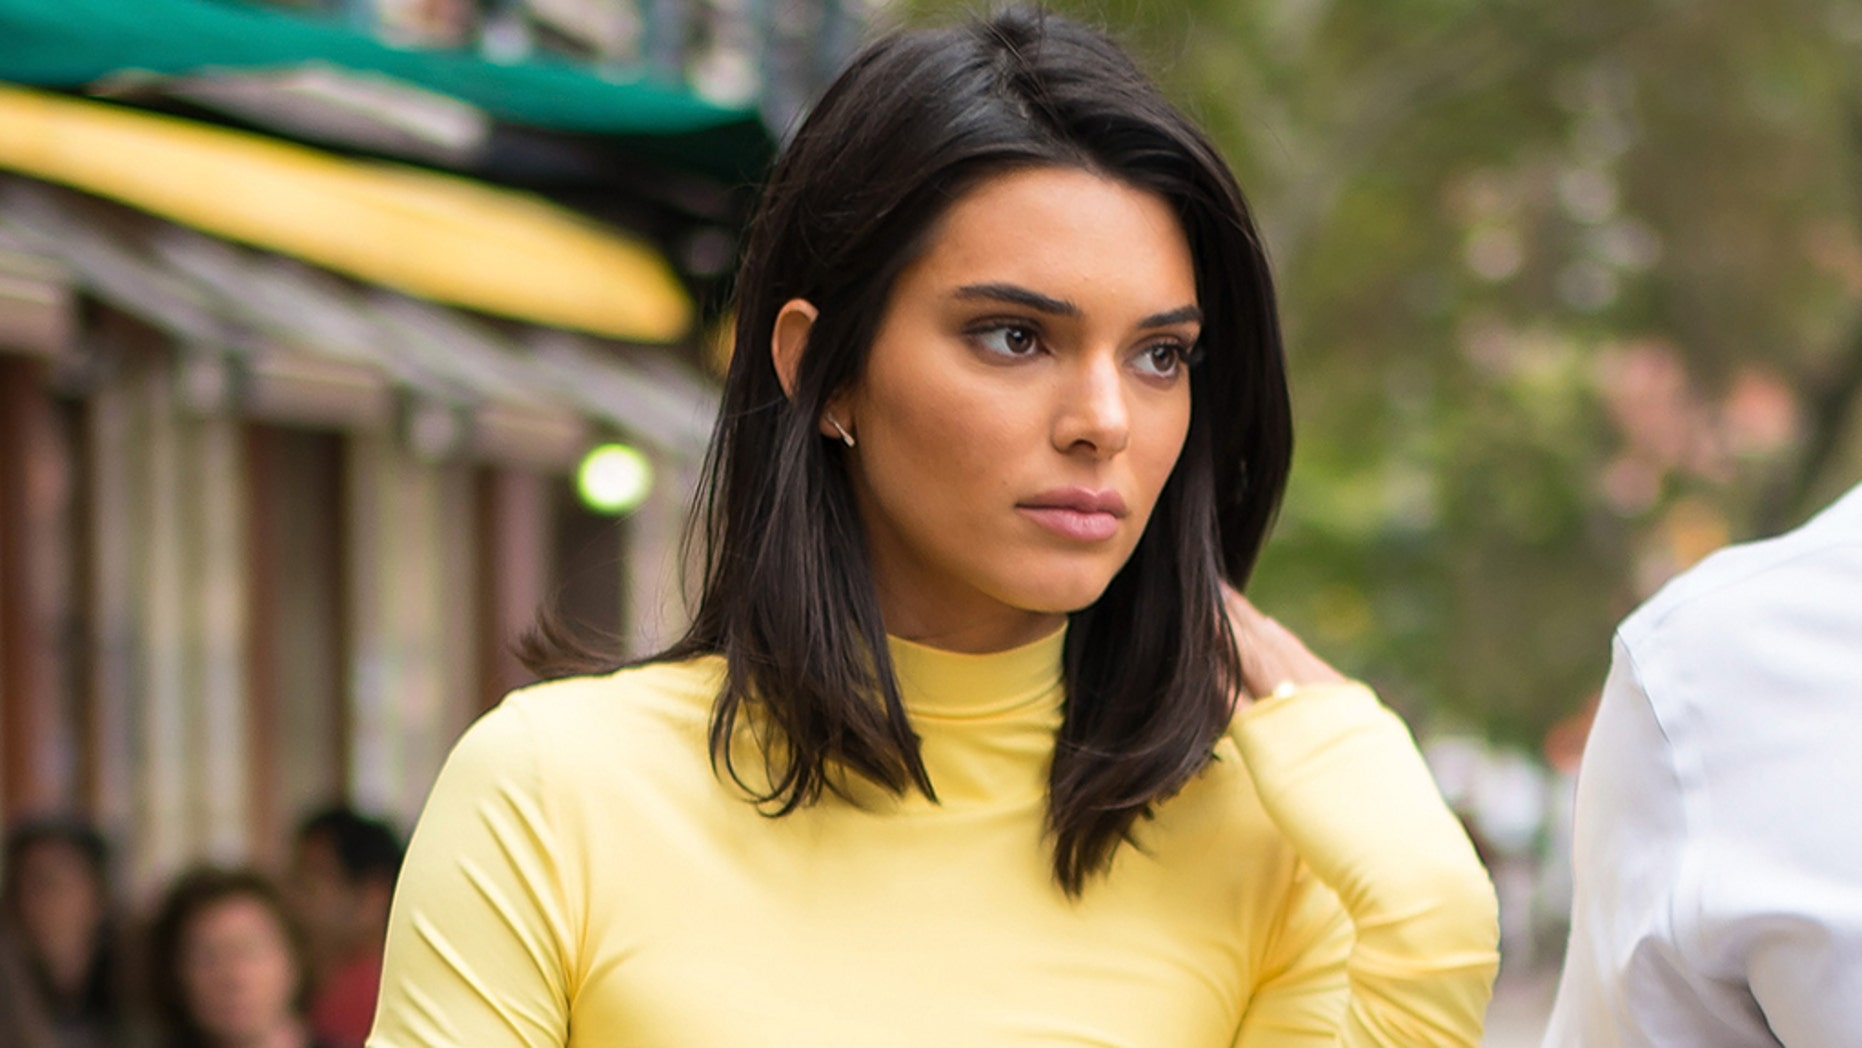 Kendall Jenner is Proactiv's Latest Spokesperson